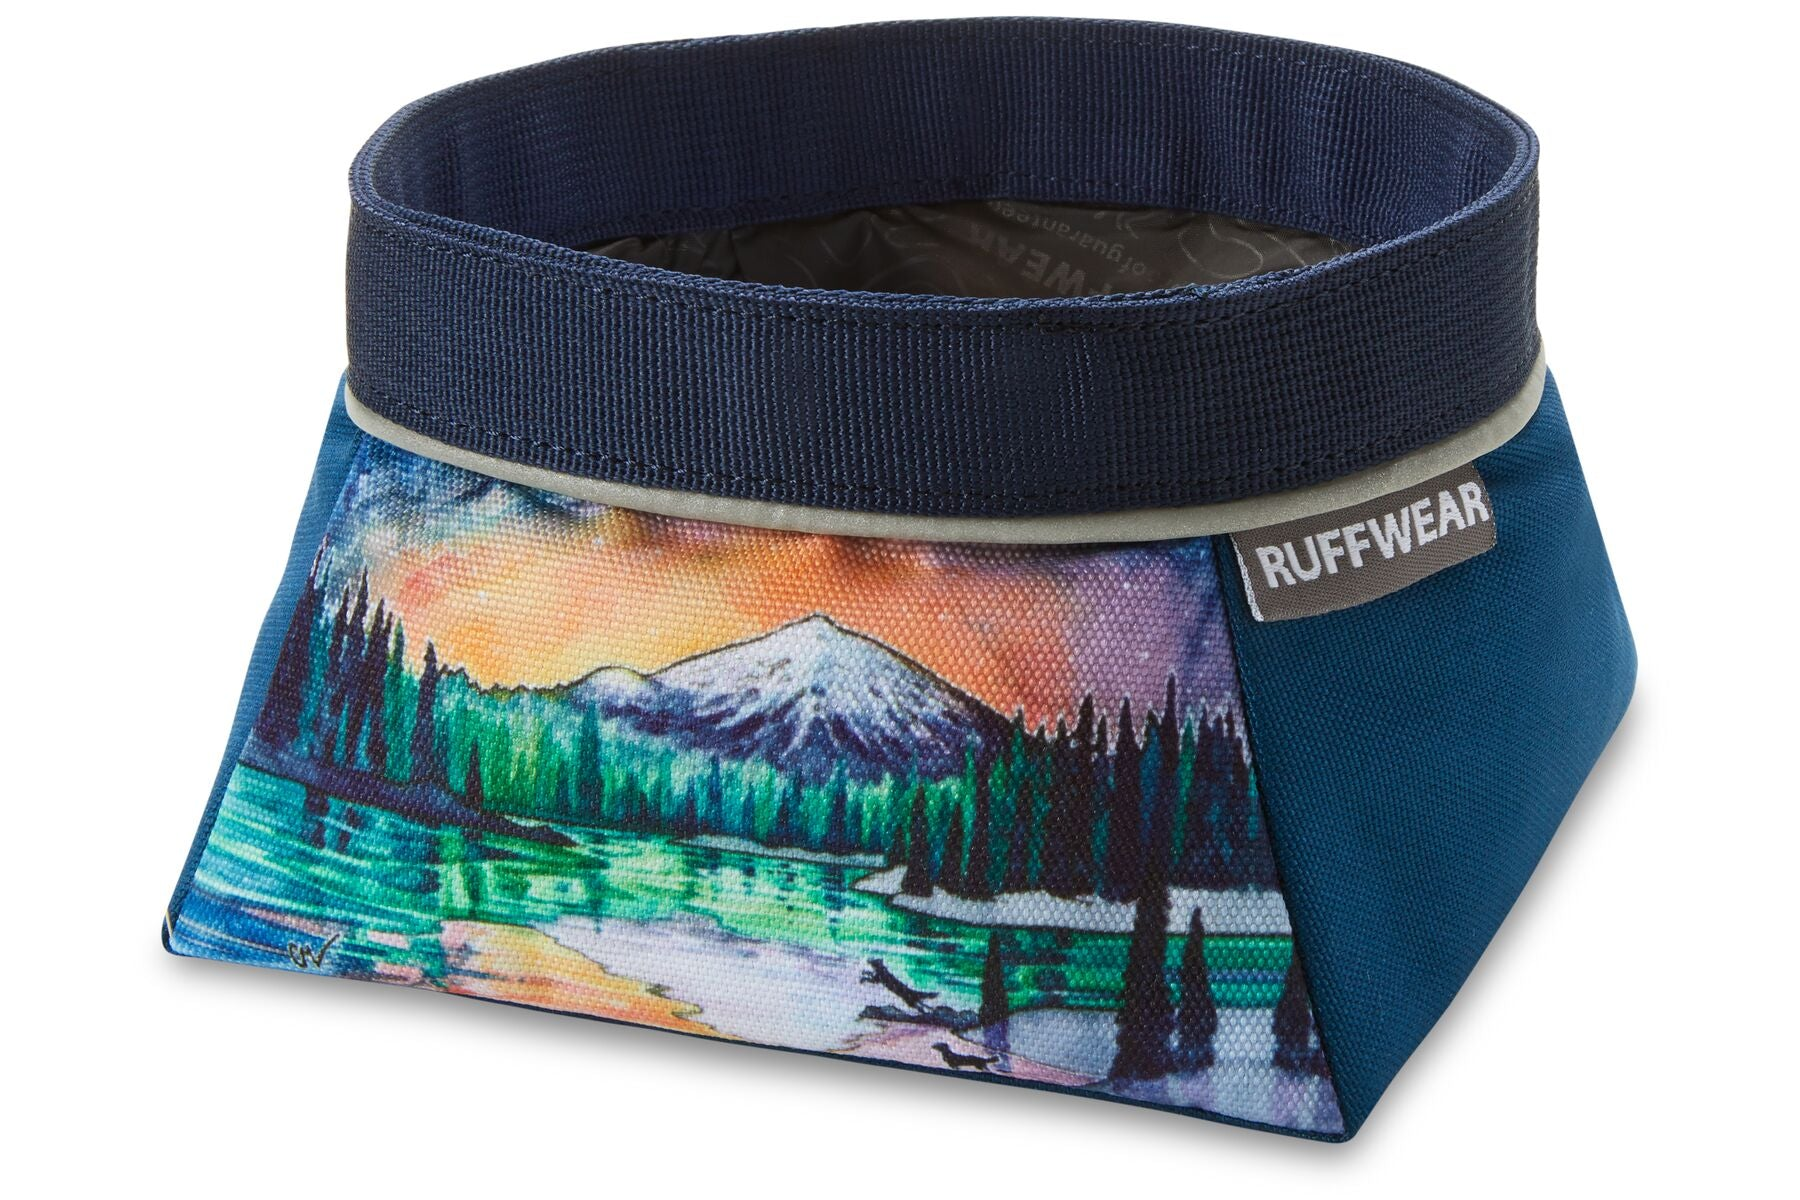 Ruffwear Artist Series Quencher Dog Bowl - Sparks Lake